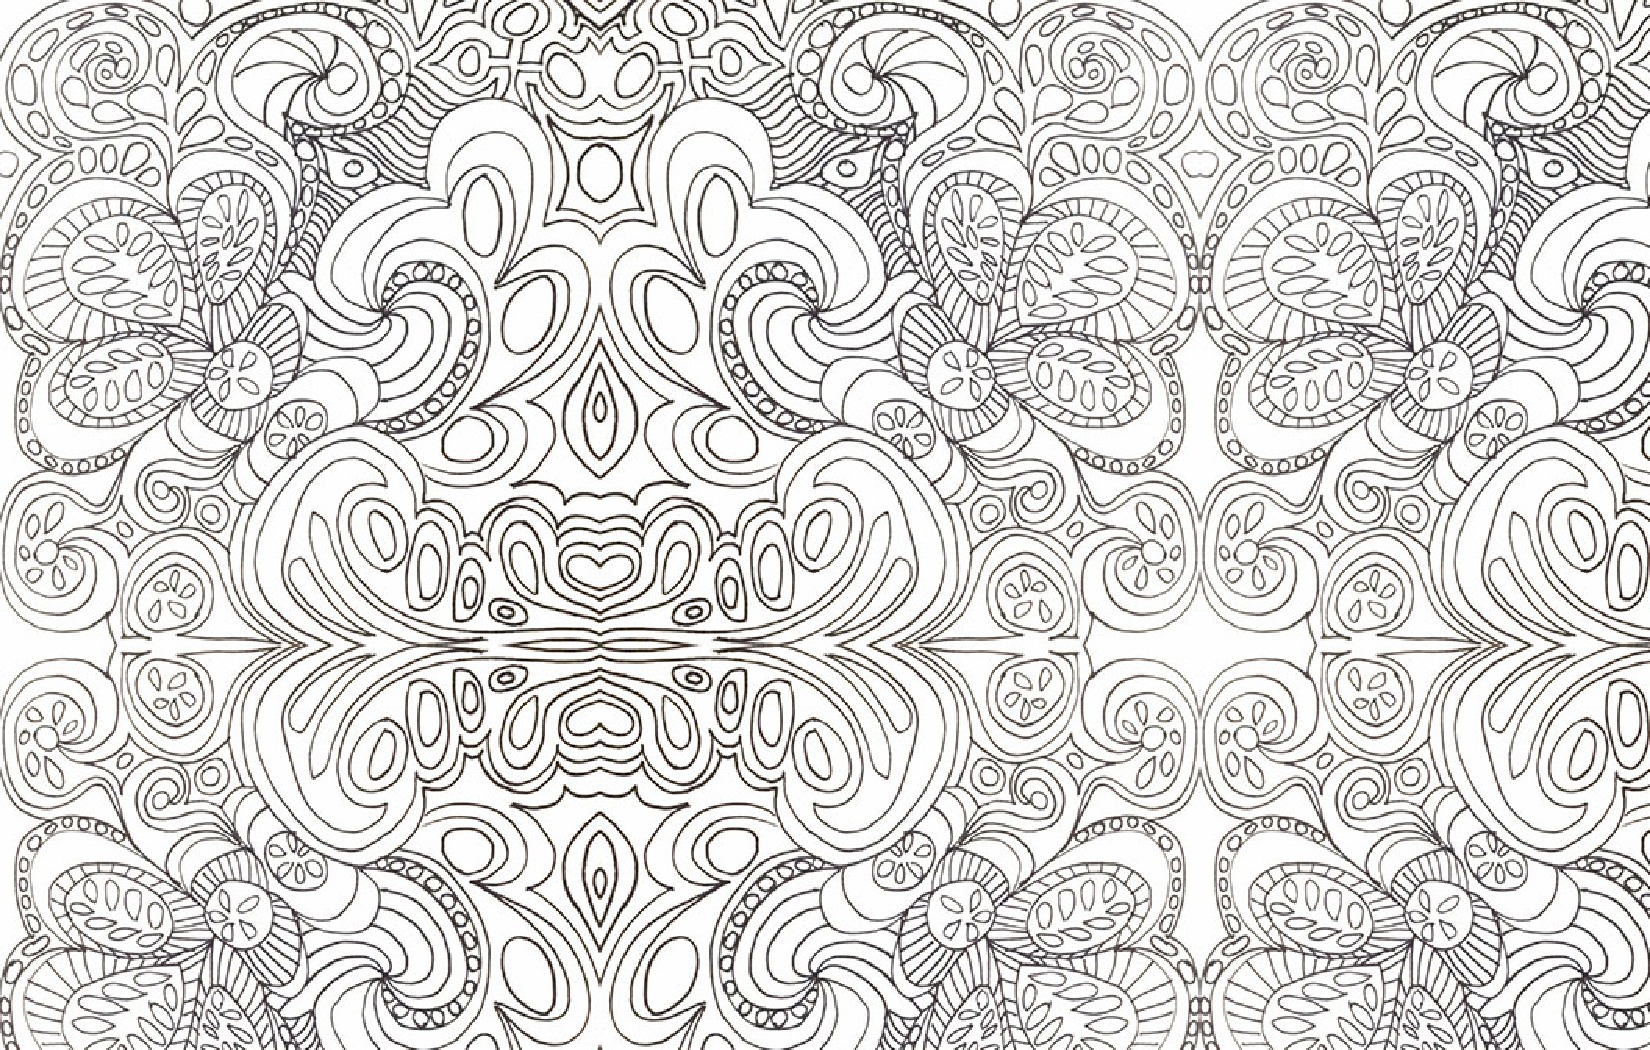 psychedelic coloring pages - Trippy Coloring Pages